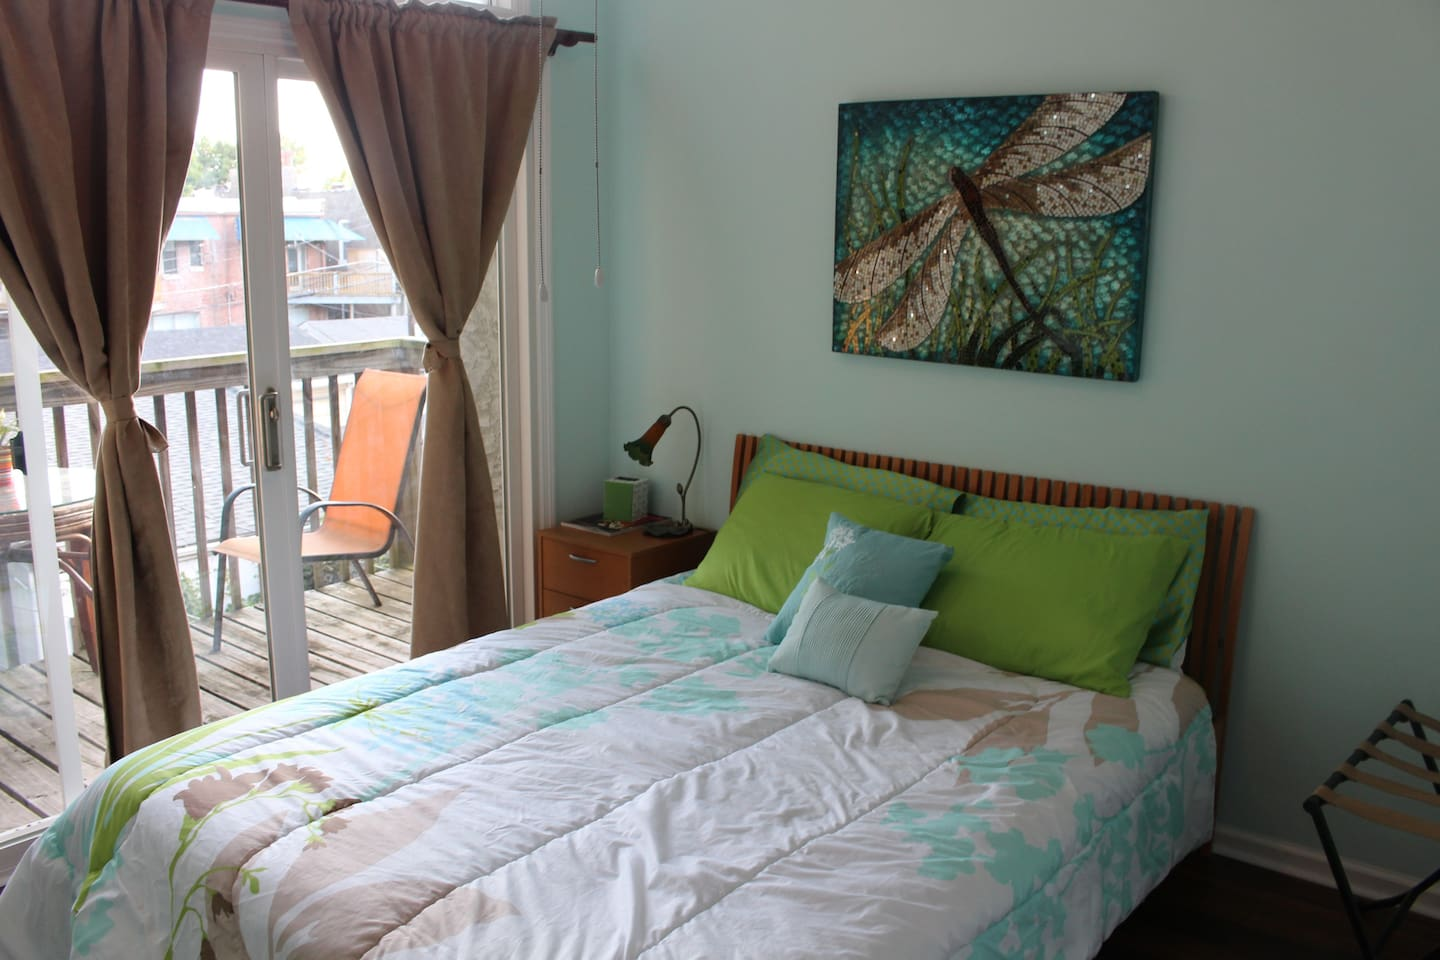 Comfortable queen size bed in a bright, sunny room.